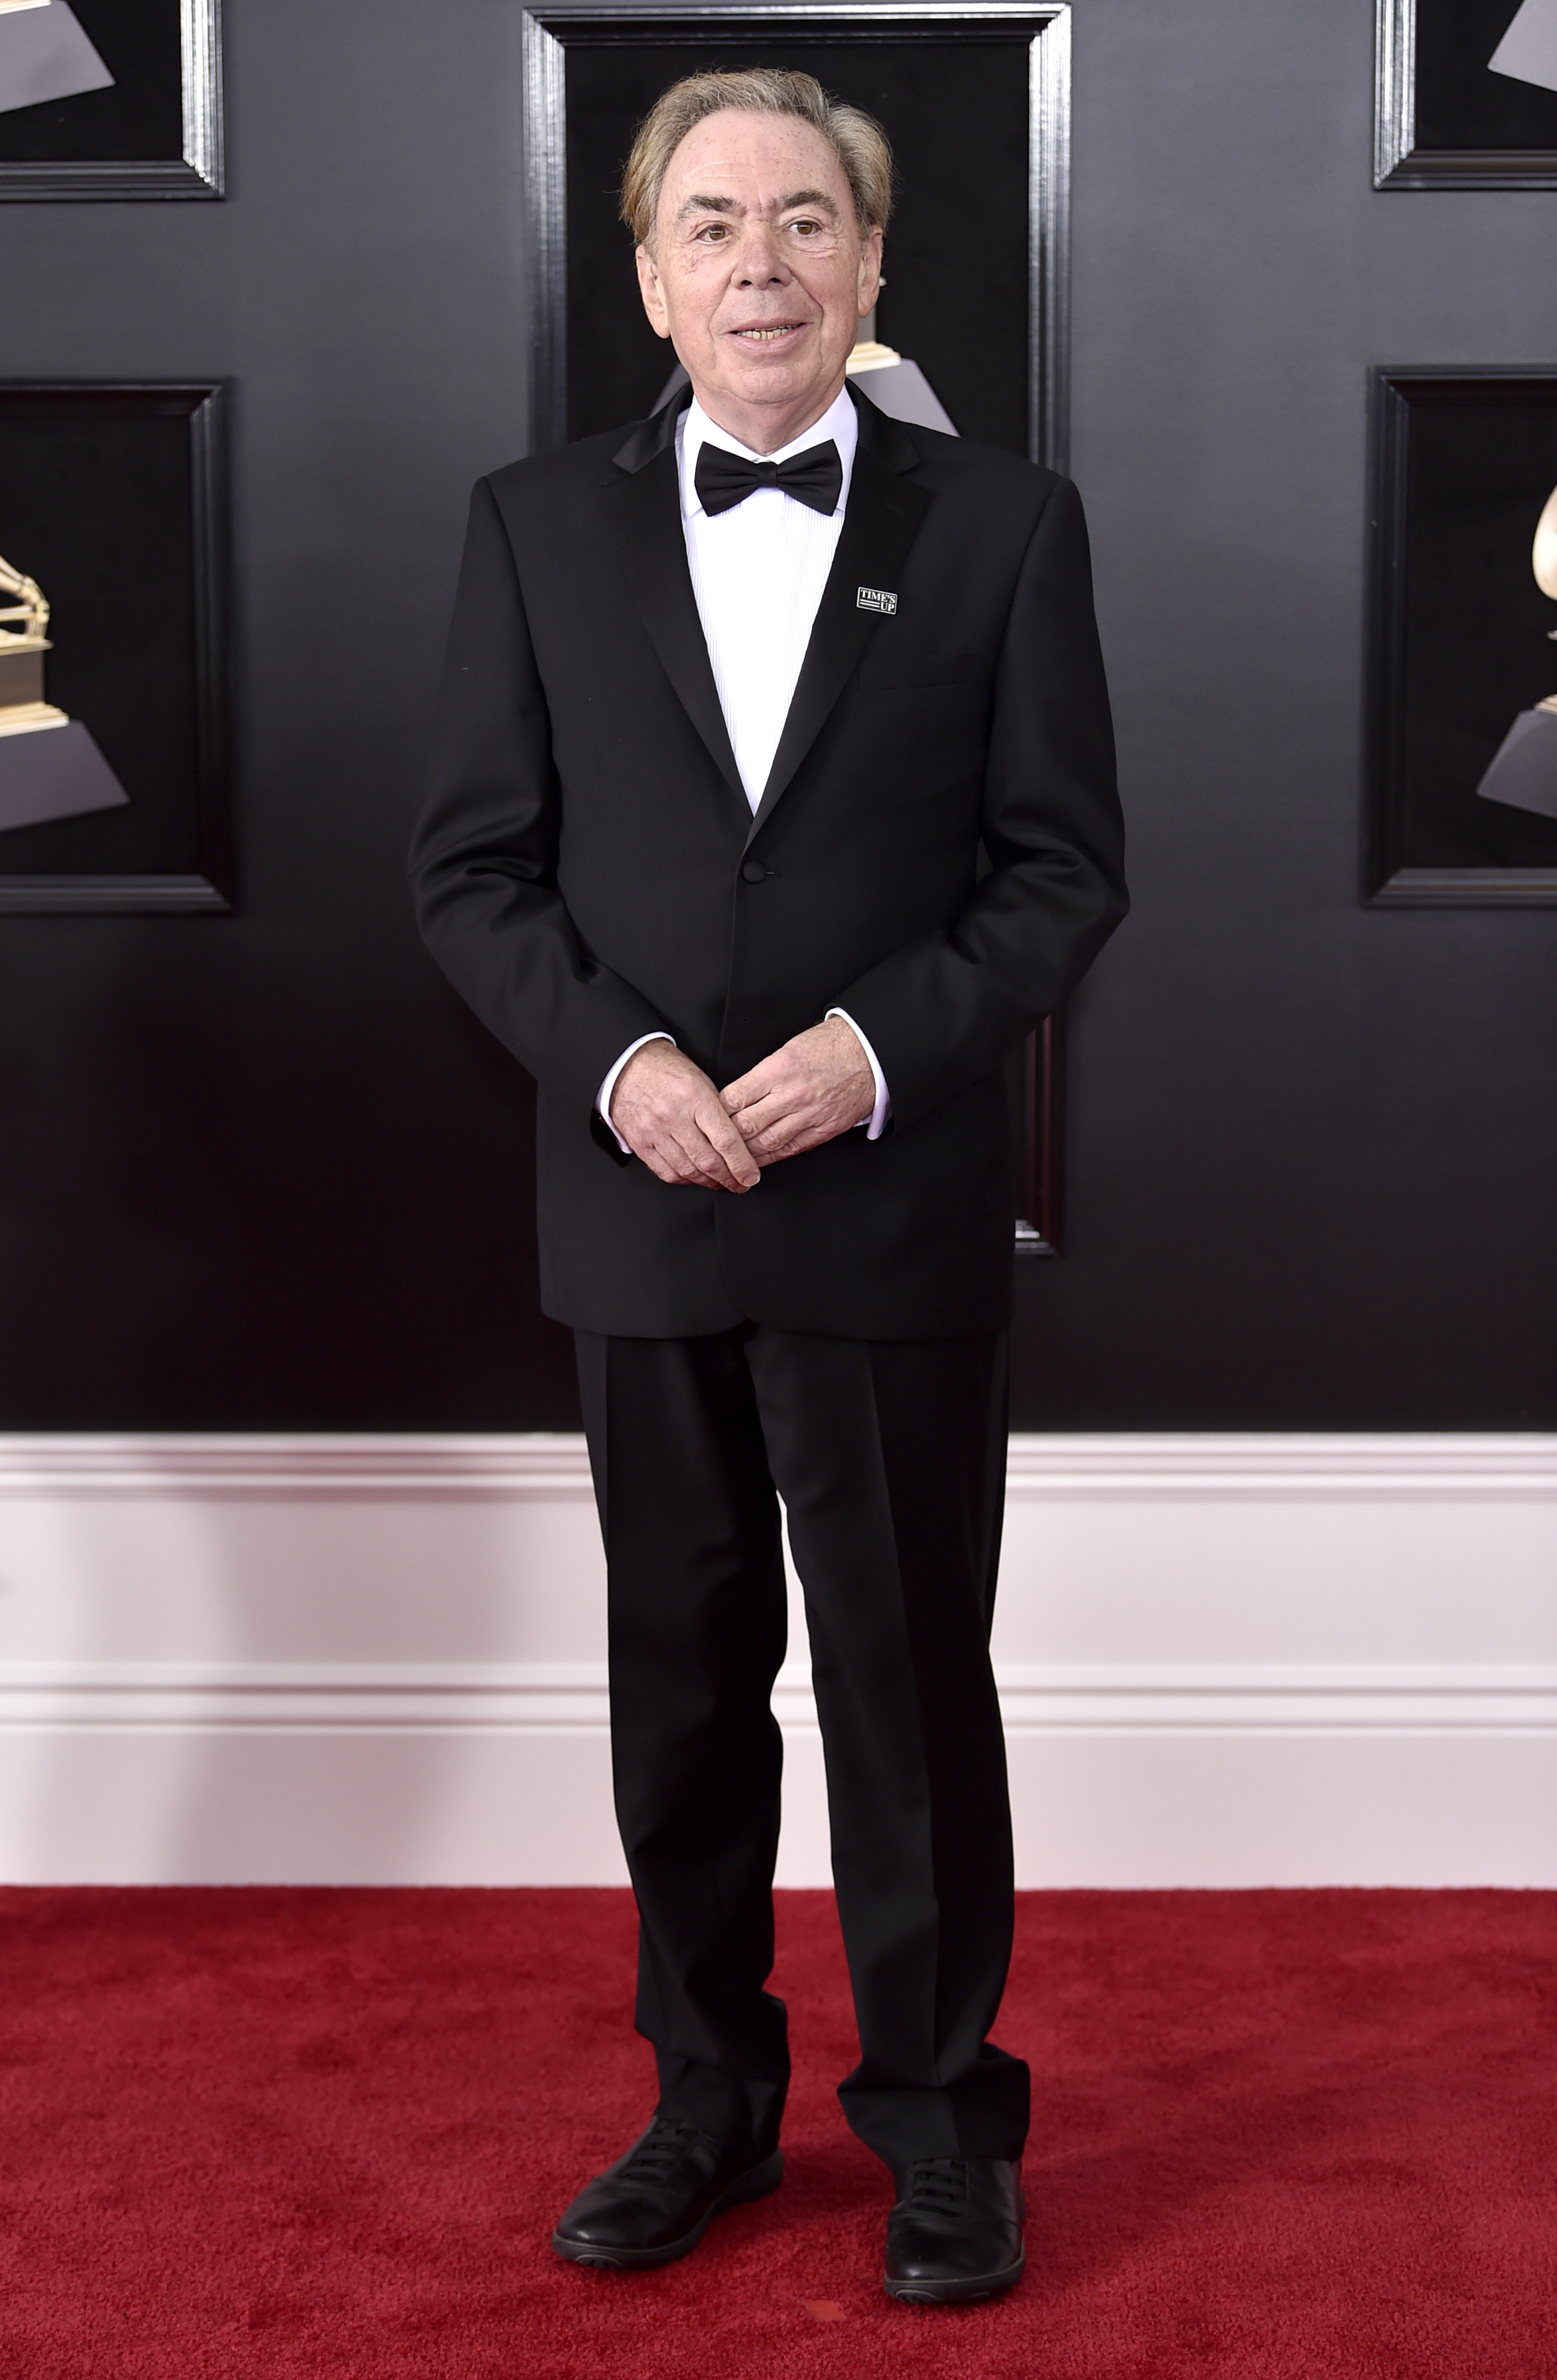 <div class='meta'><div class='origin-logo' data-origin='AP'></div><span class='caption-text' data-credit='Evan Agostini/Invision/AP'>Andrew Lloyd Webber arrives at the 60th annual Grammy Awards at Madison Square Garden on Sunday, Jan. 28, 2018, in New York.</span></div>